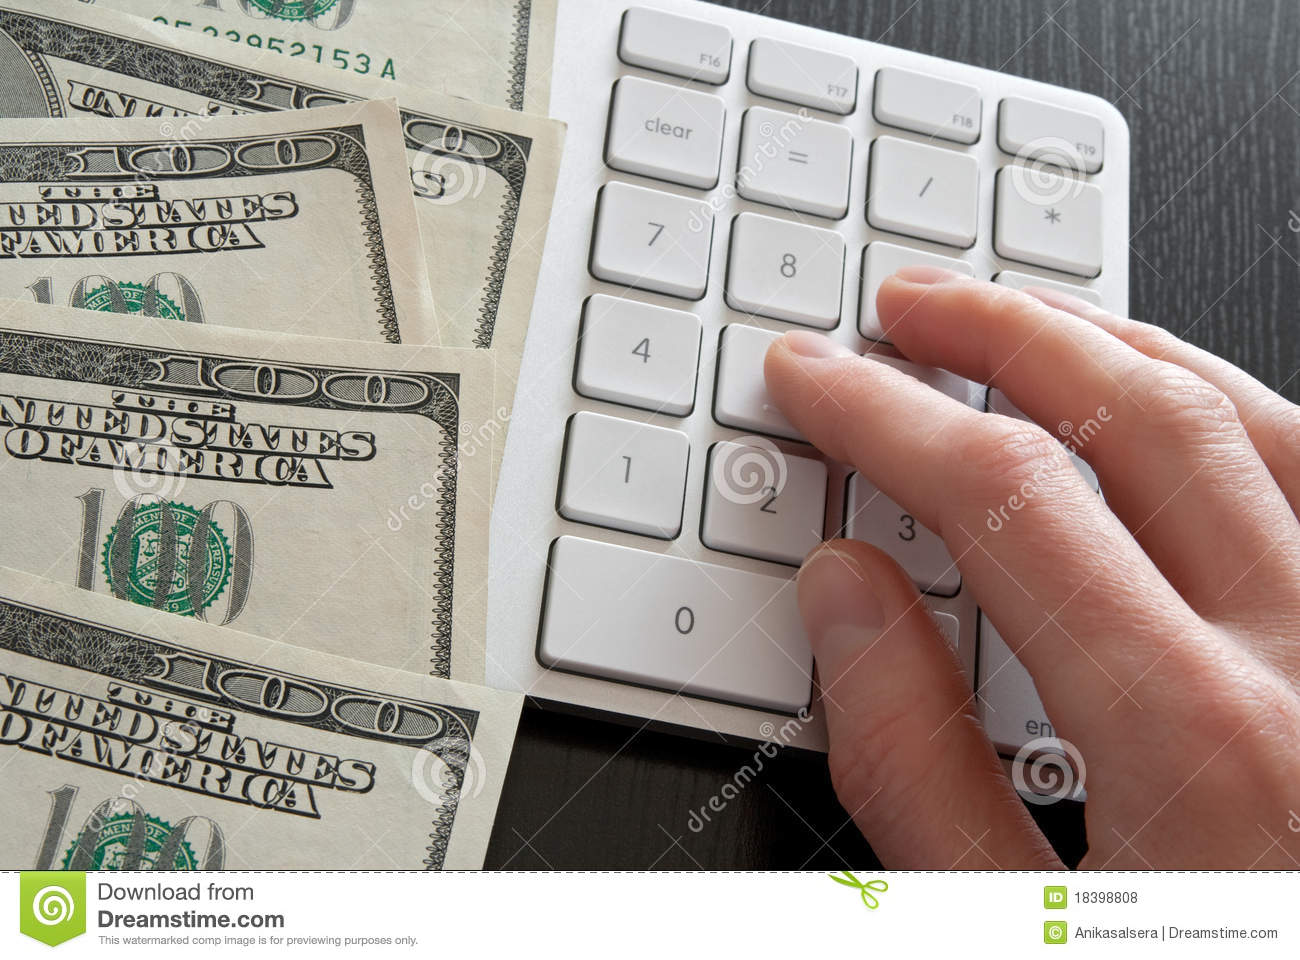 Counting Money On Computer Calculator Royalty Free Stock Photos - Image: 18398808